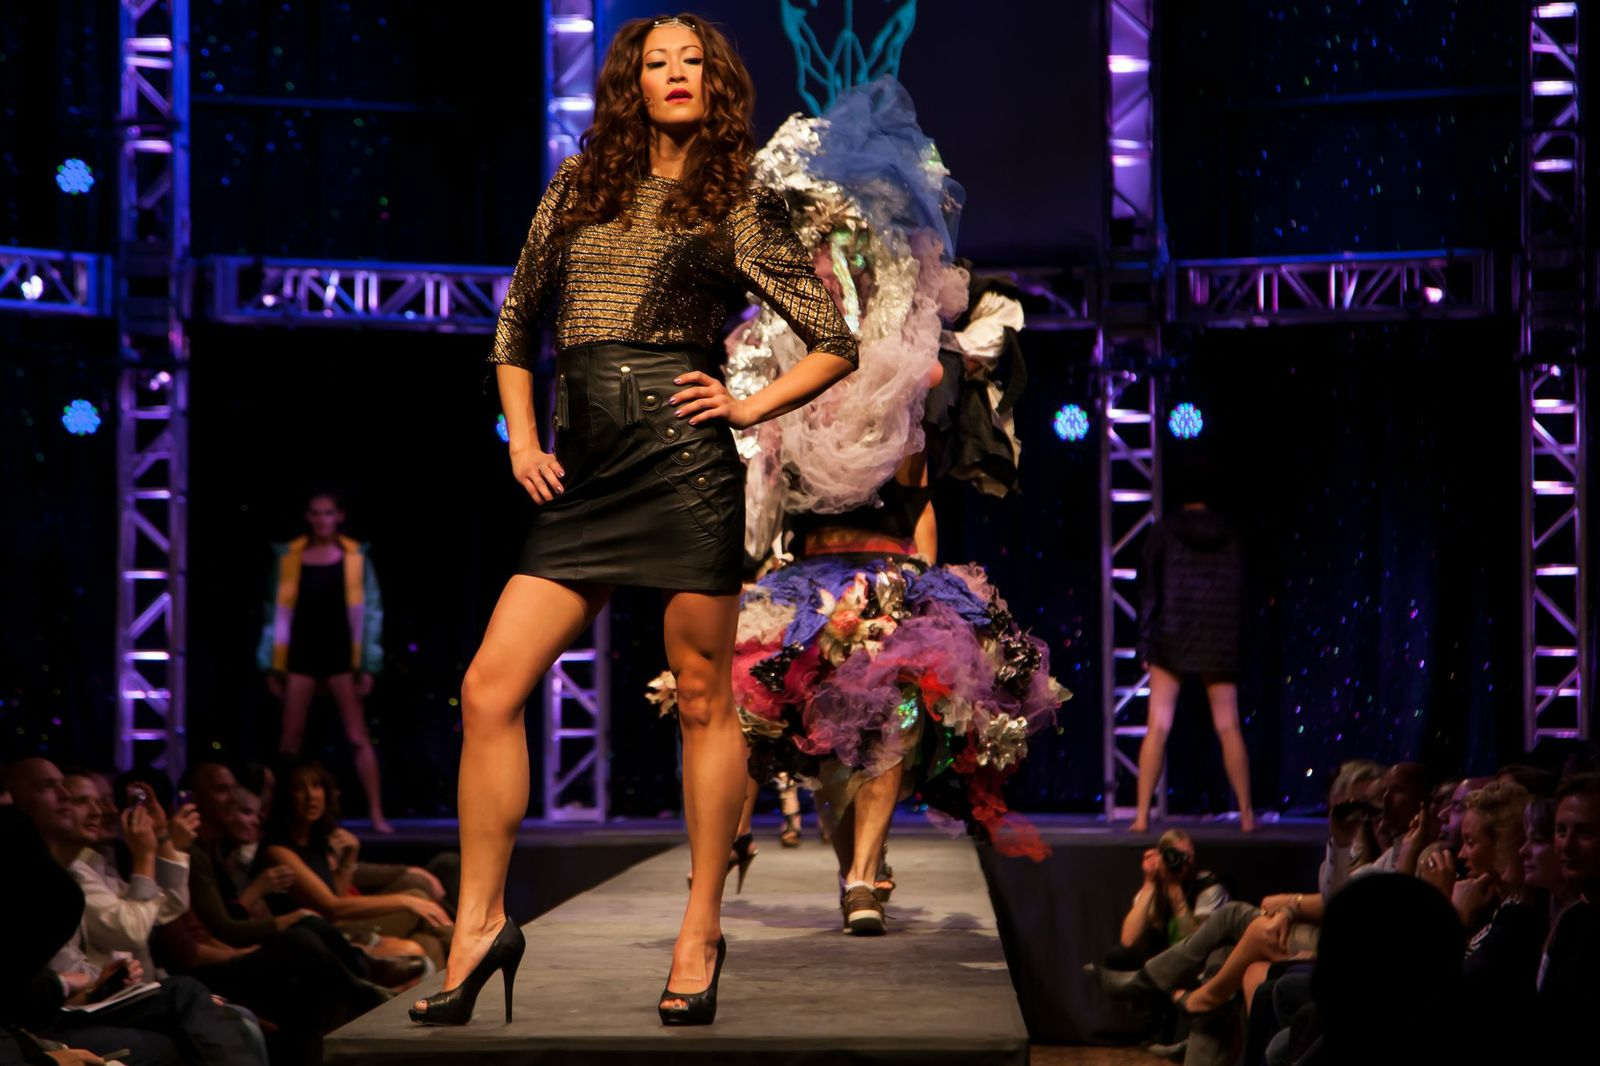 Telluride Aids Benefit - the GALA Fashion Show